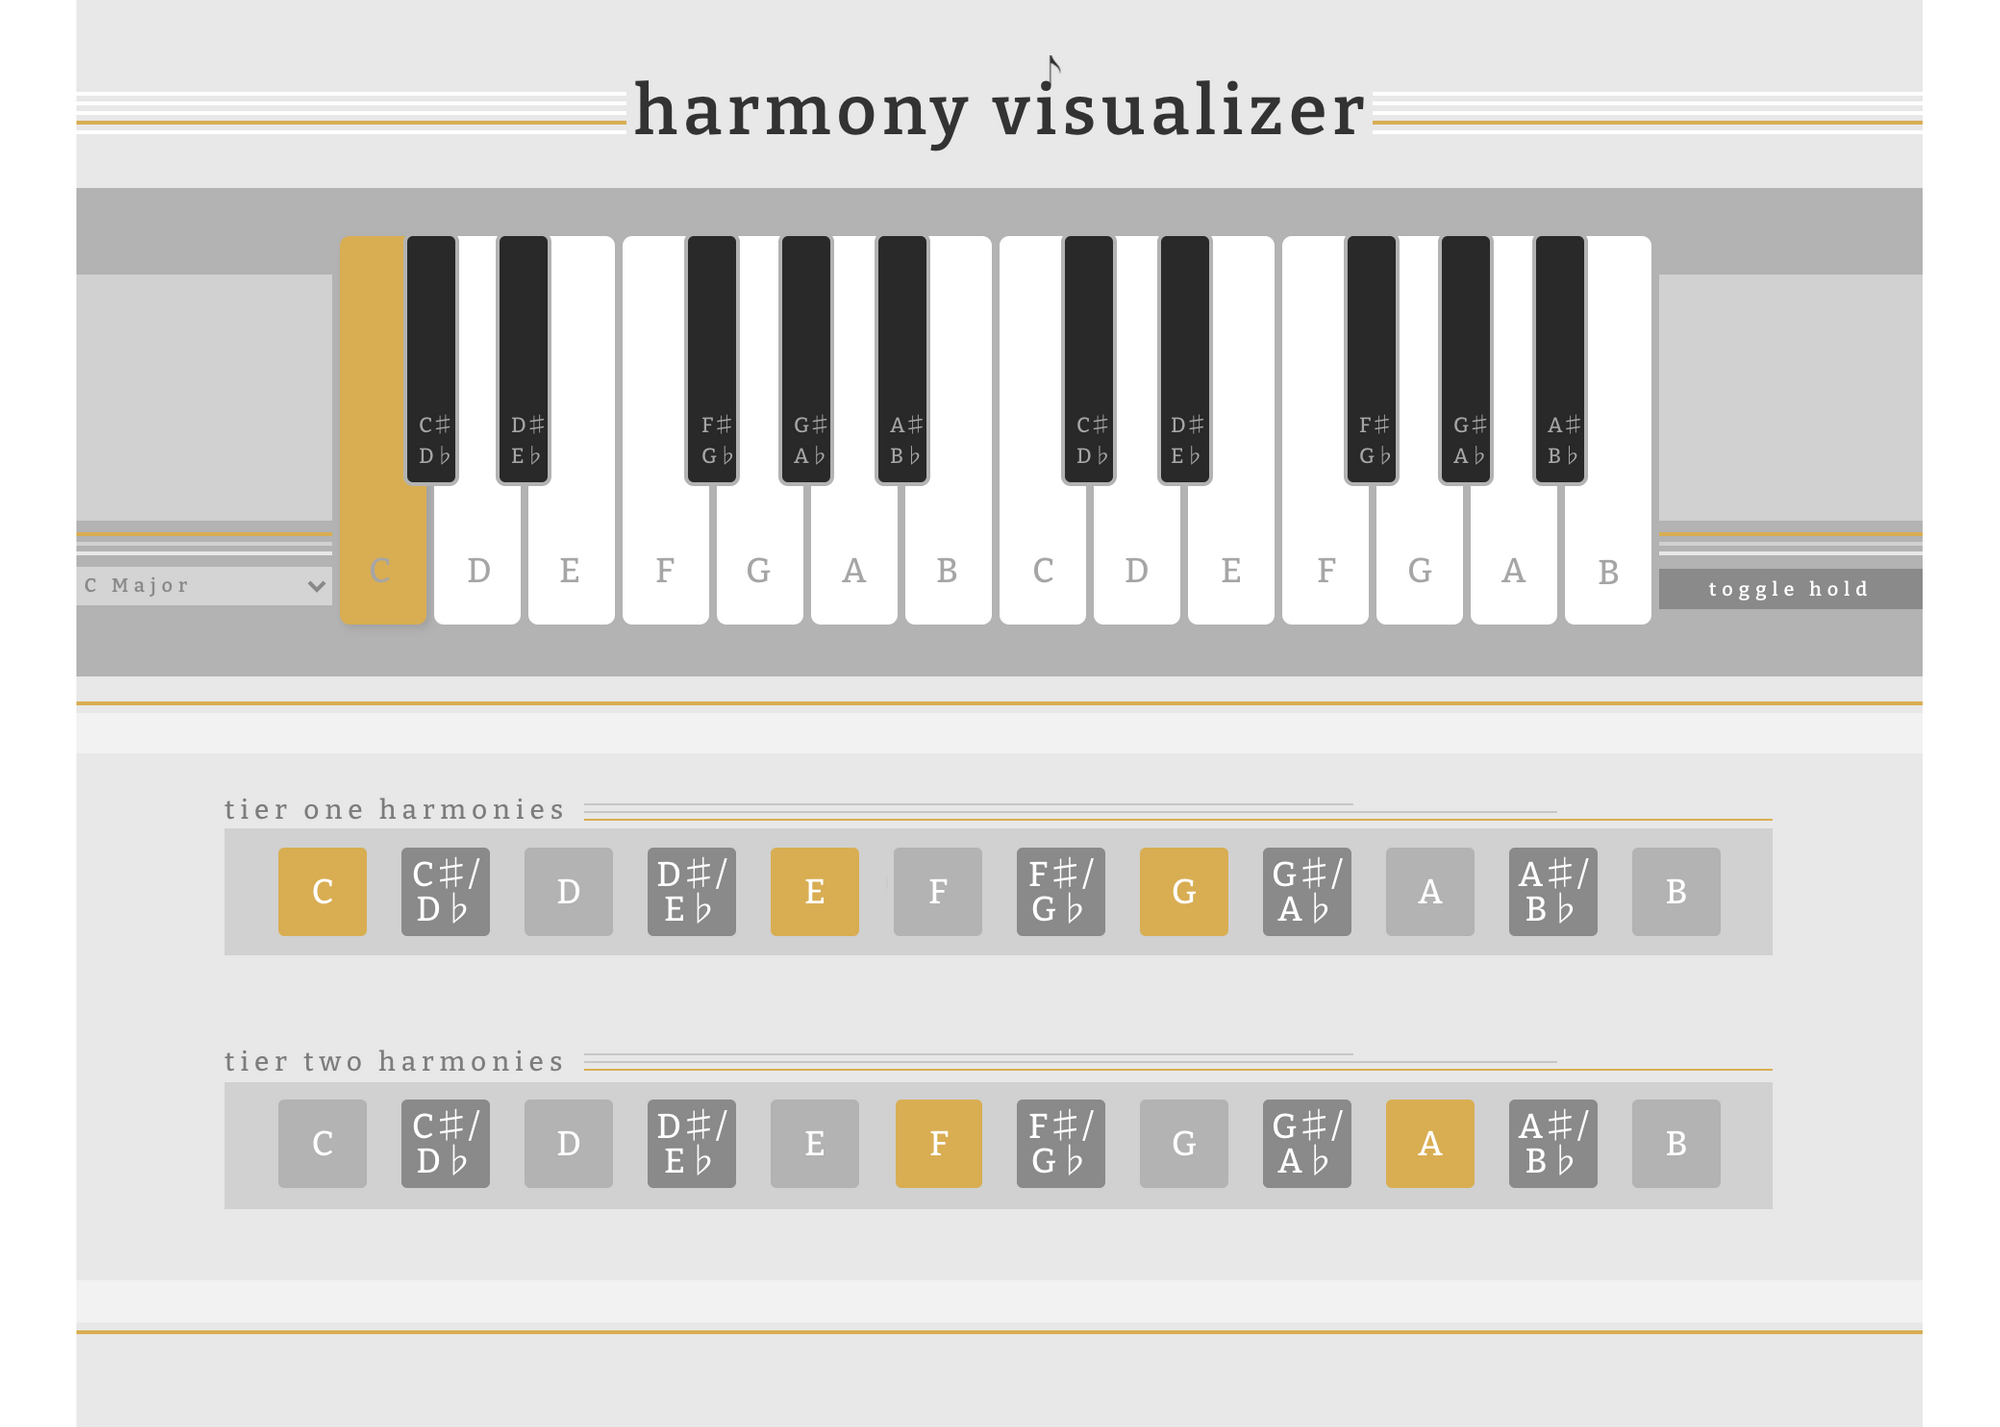 """The visualization of the """"C"""" note's tier one and tier two harmonies within C Major."""